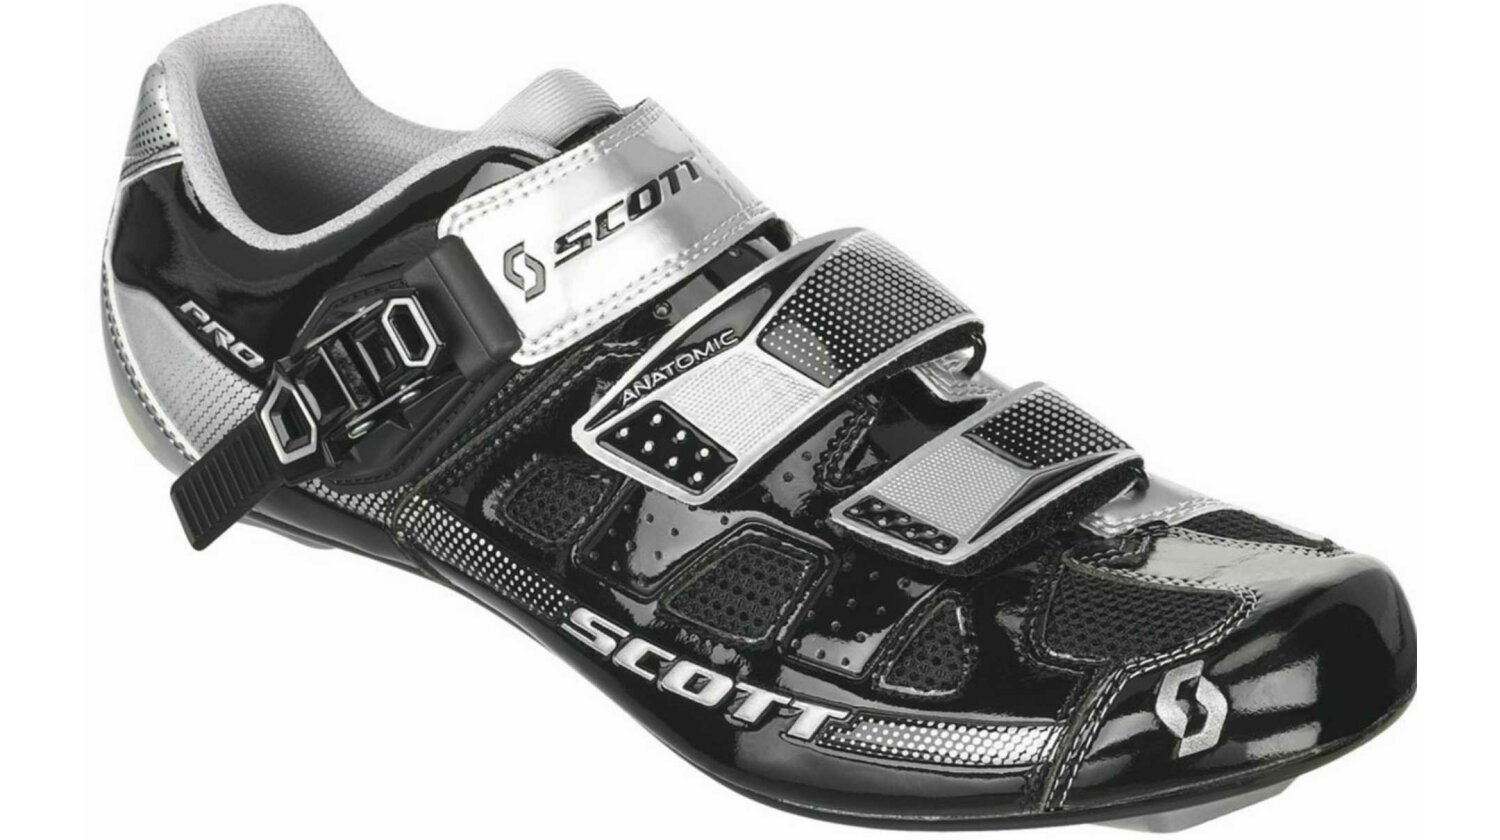 Scott Road Pro Schuh black/silver gloss 45